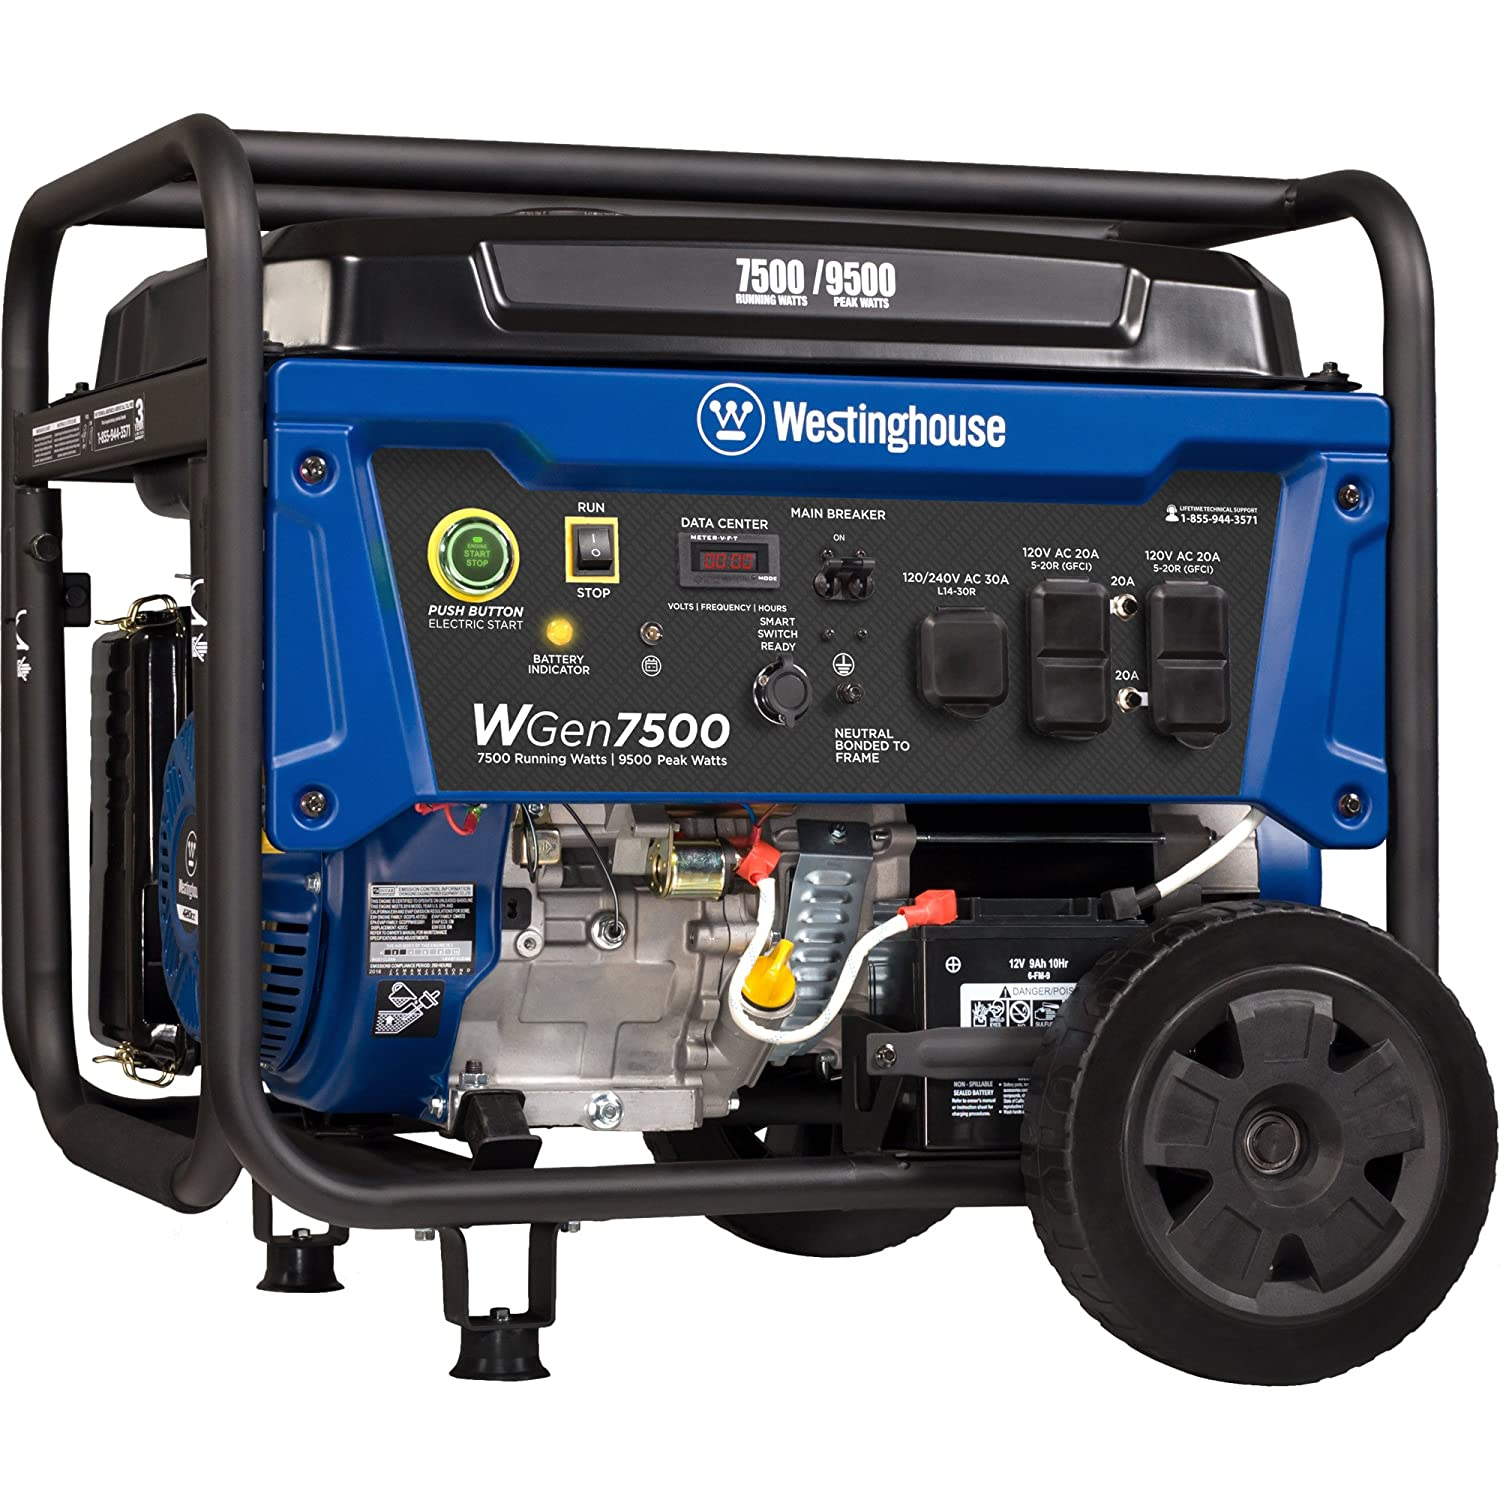 Best RV Generators of 2019 - Durostar, Westinghouse, Duromax